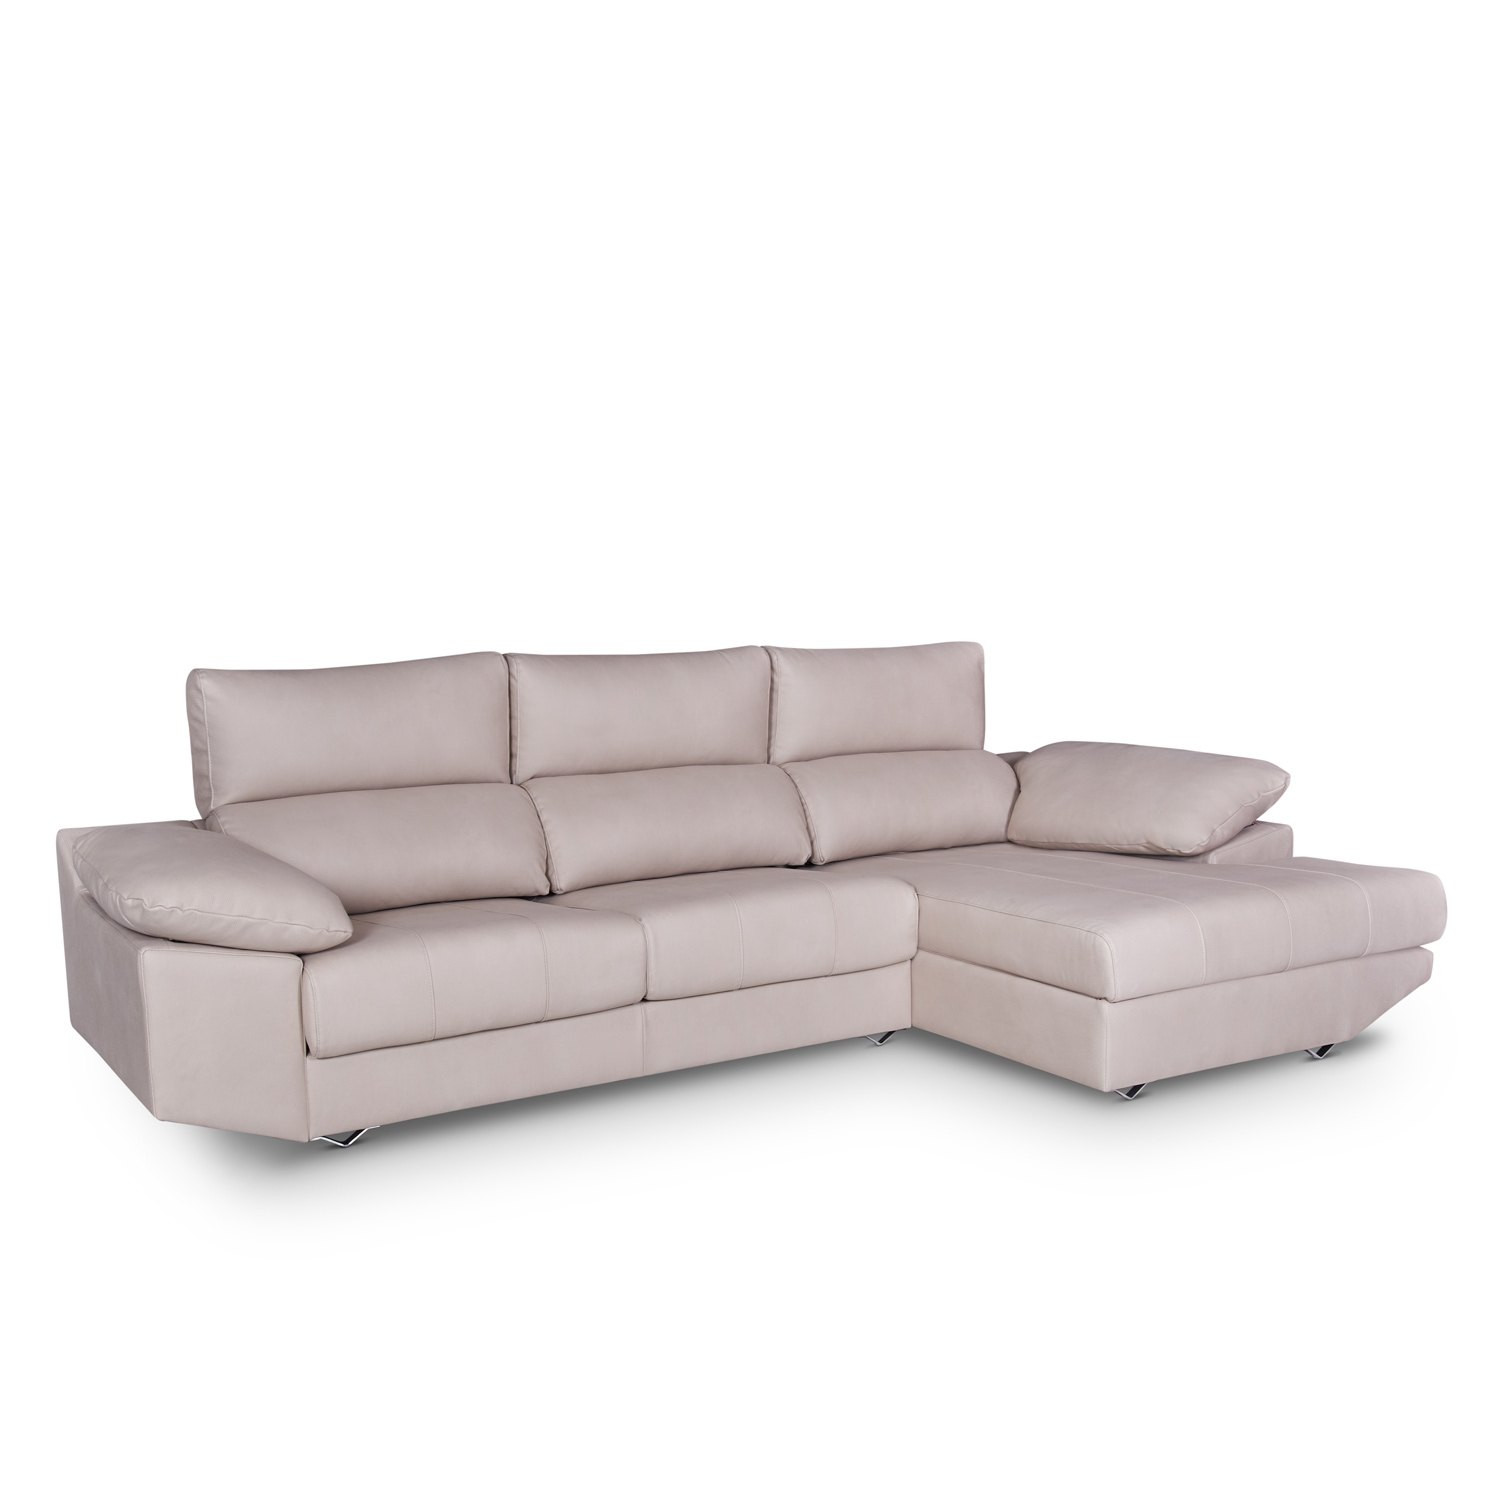 Oferta sofa Chaise Longue Increíble sofa Con Chaise Longue Con Arcón Cómodo En Tres Colores Of 41  Encantador Oferta sofa Chaise Longue